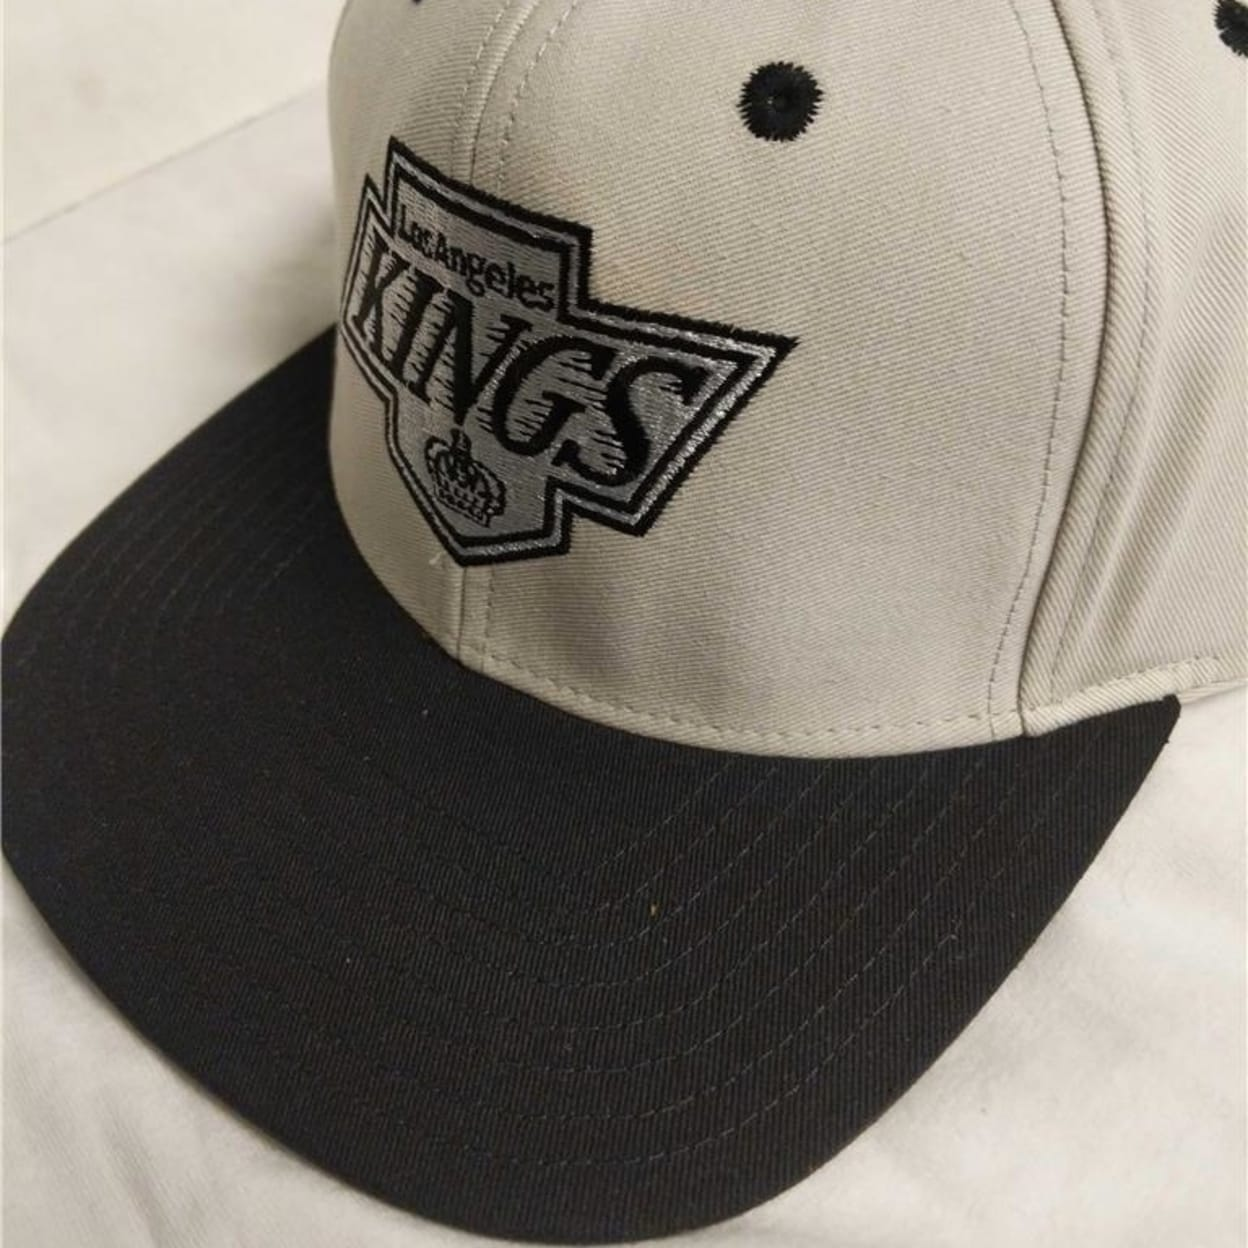 ddee3474 Shop Los Angeles Kings Mens Size Osfa Snapback Flatbrim Vintage Hat - On  Sale - Free Shipping On Orders Over $45 - Overstock - 23071100